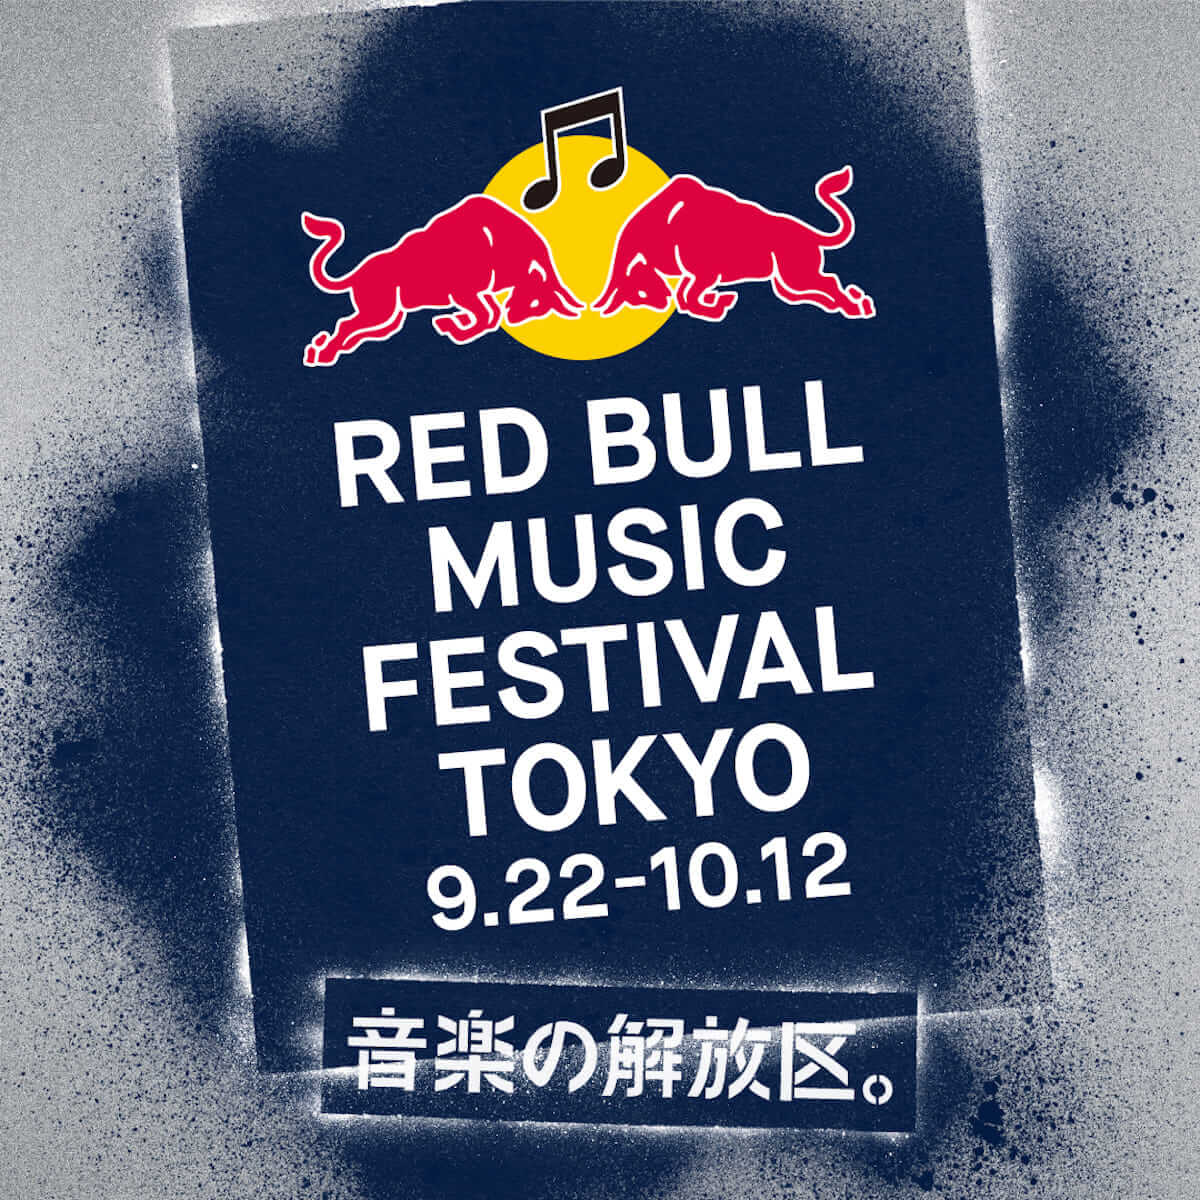 【イベントレポ】RED BULL MUSIC FESTIVAL TOKYO 2018|SOUND JUNCTION music180804-redbullmusicfestival-7-1200x1200